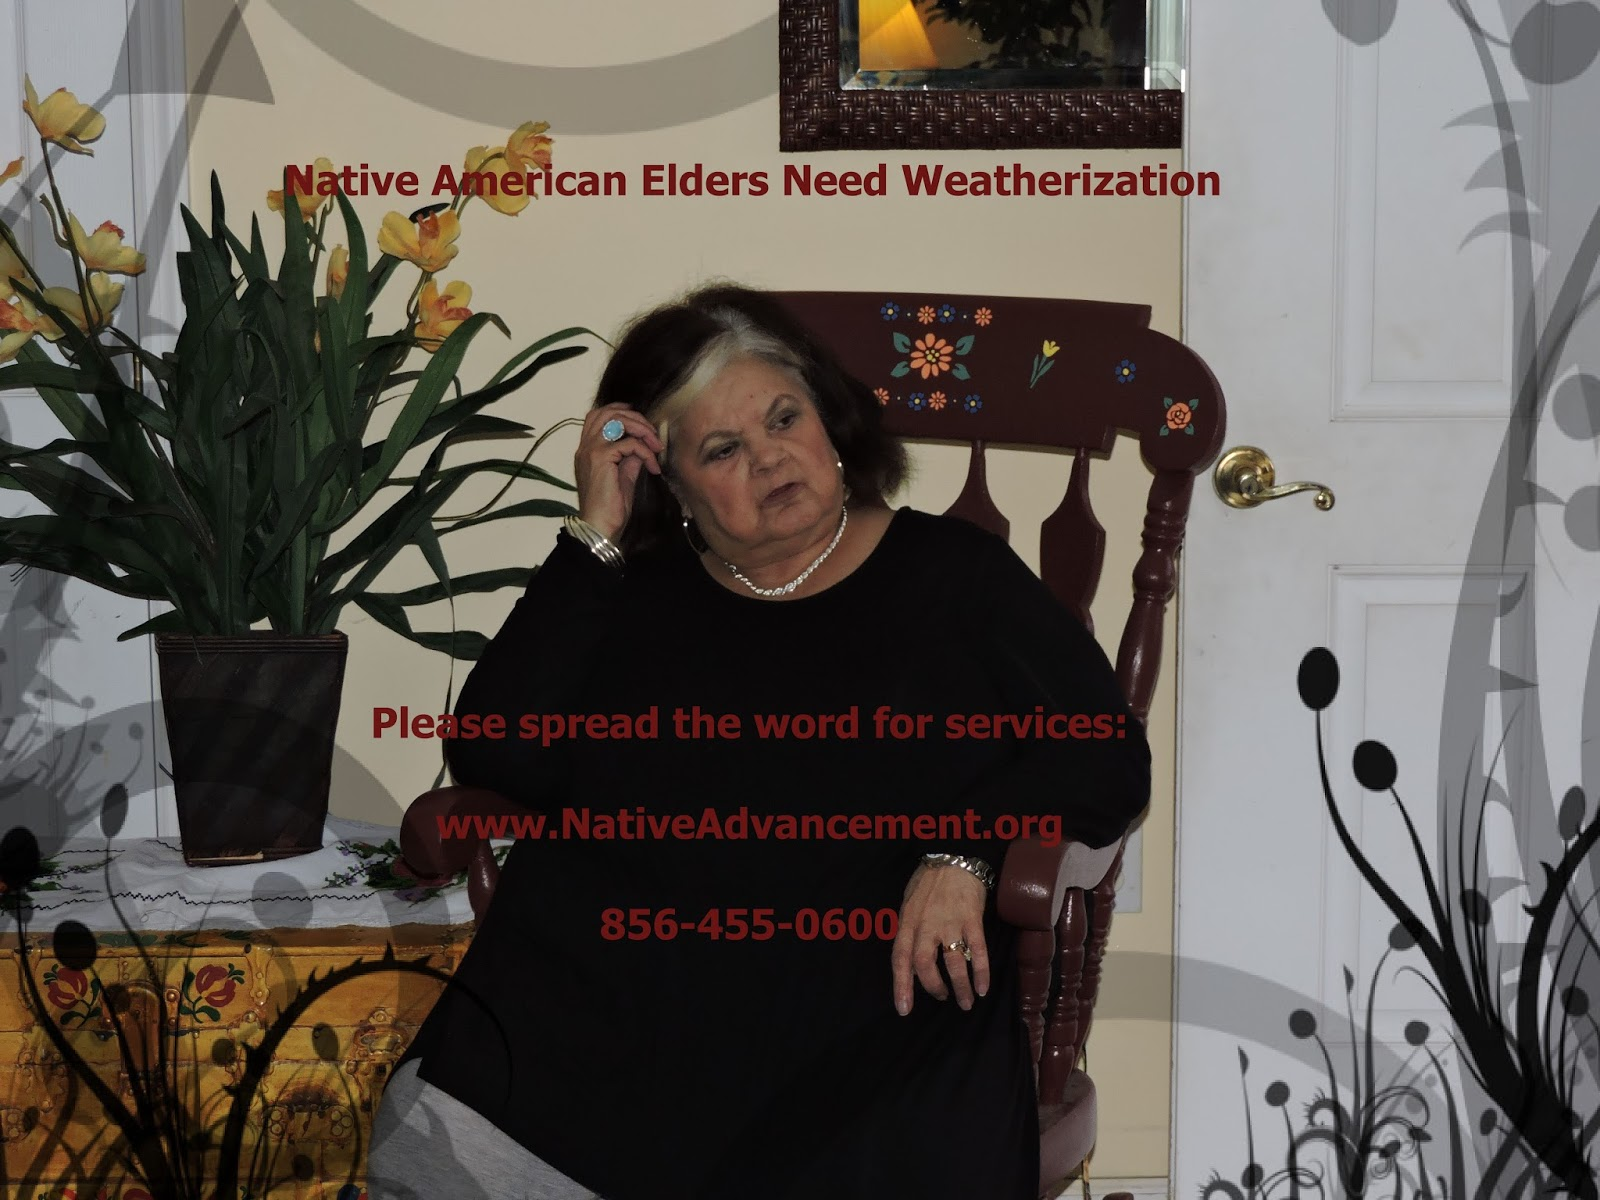 Native American Elders Need Weatherization!